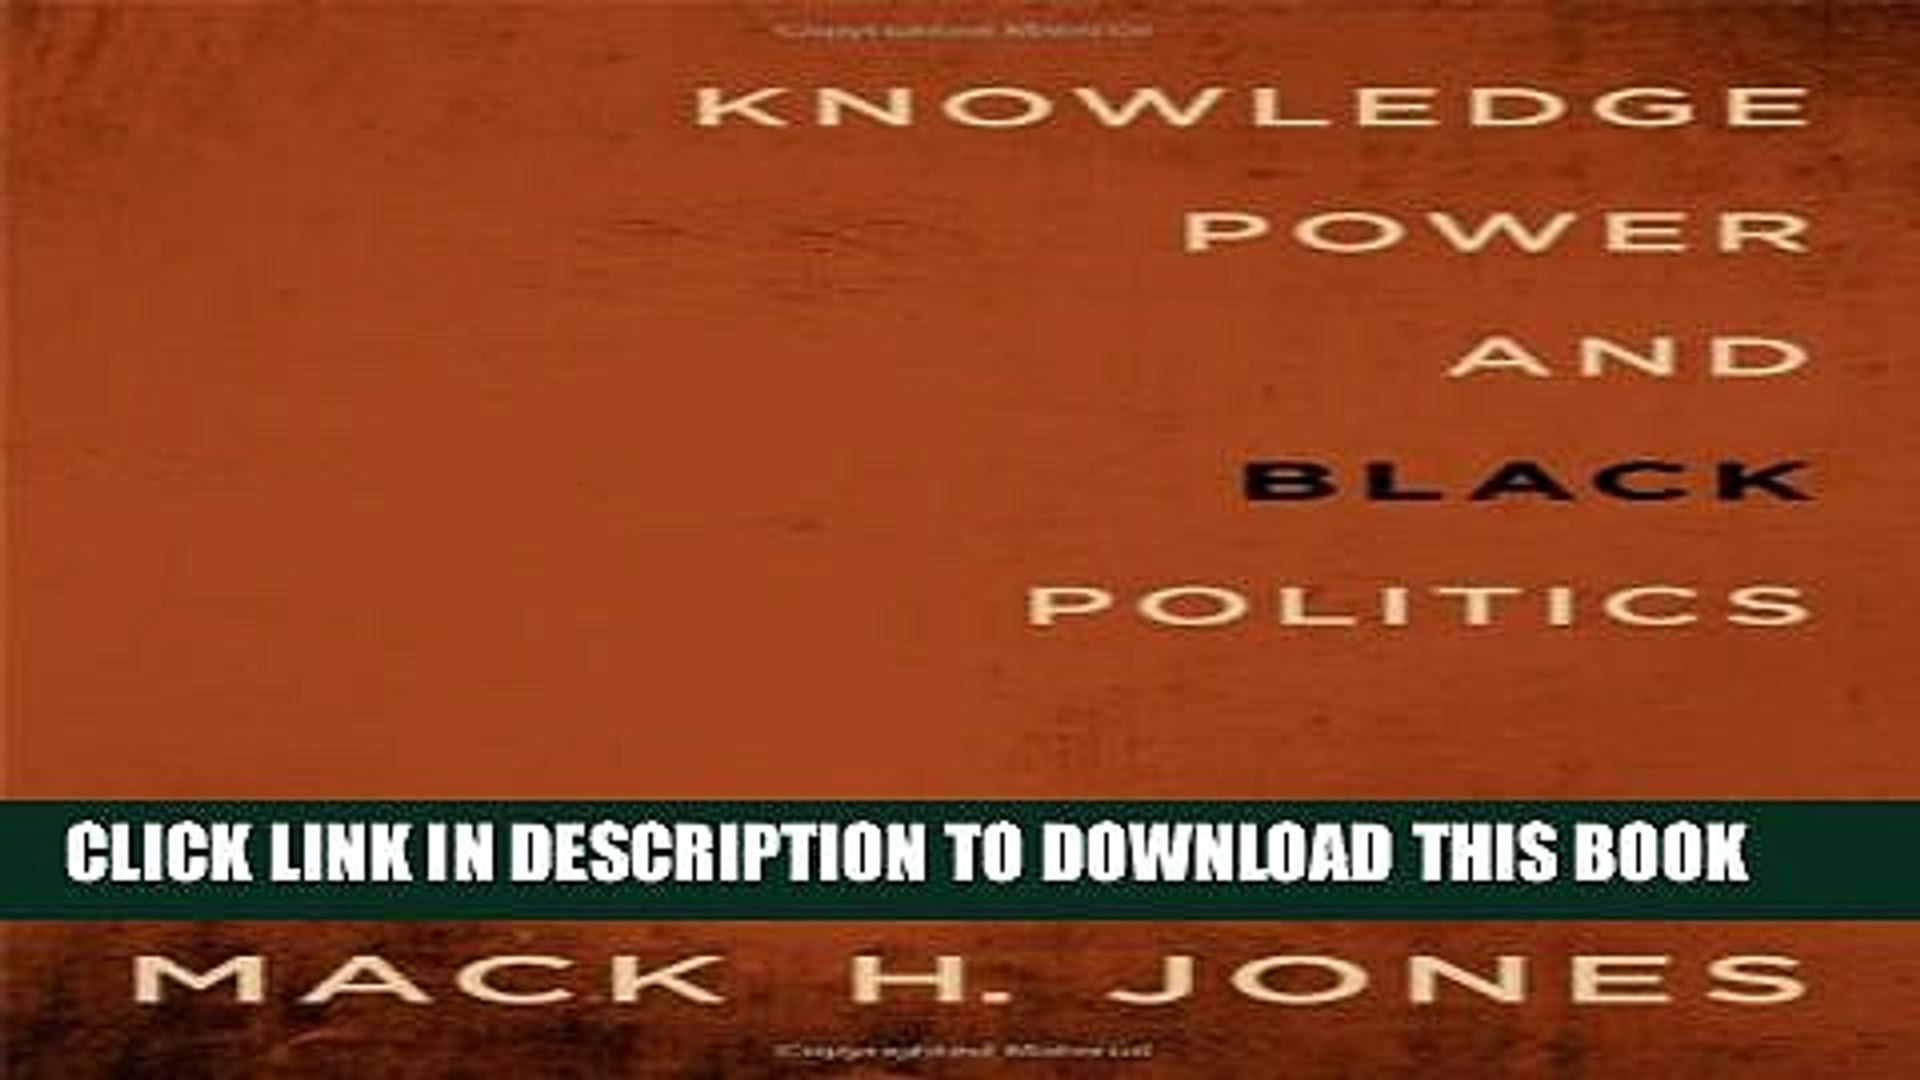 [Read PDF] Knowledge, Power, and Black Politics: Collected Essays (Suny Series in African American